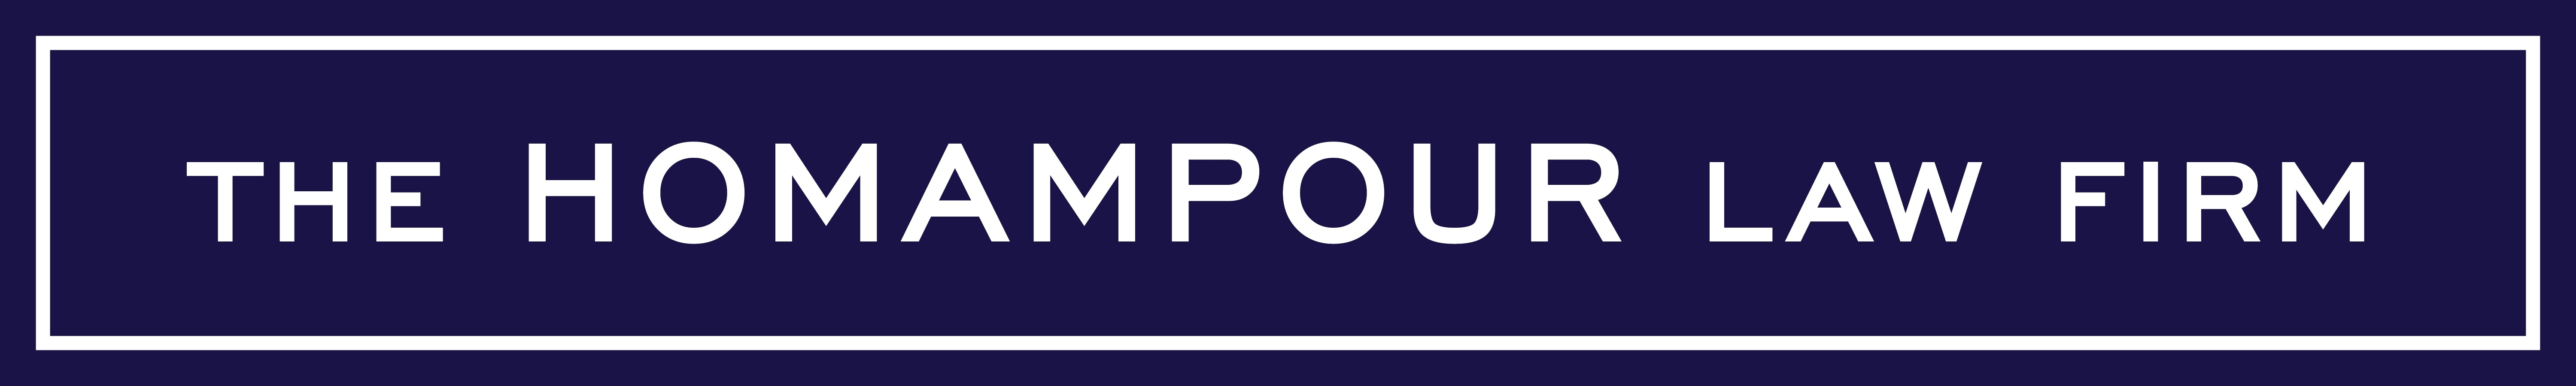 The Homampour Law Firm logo